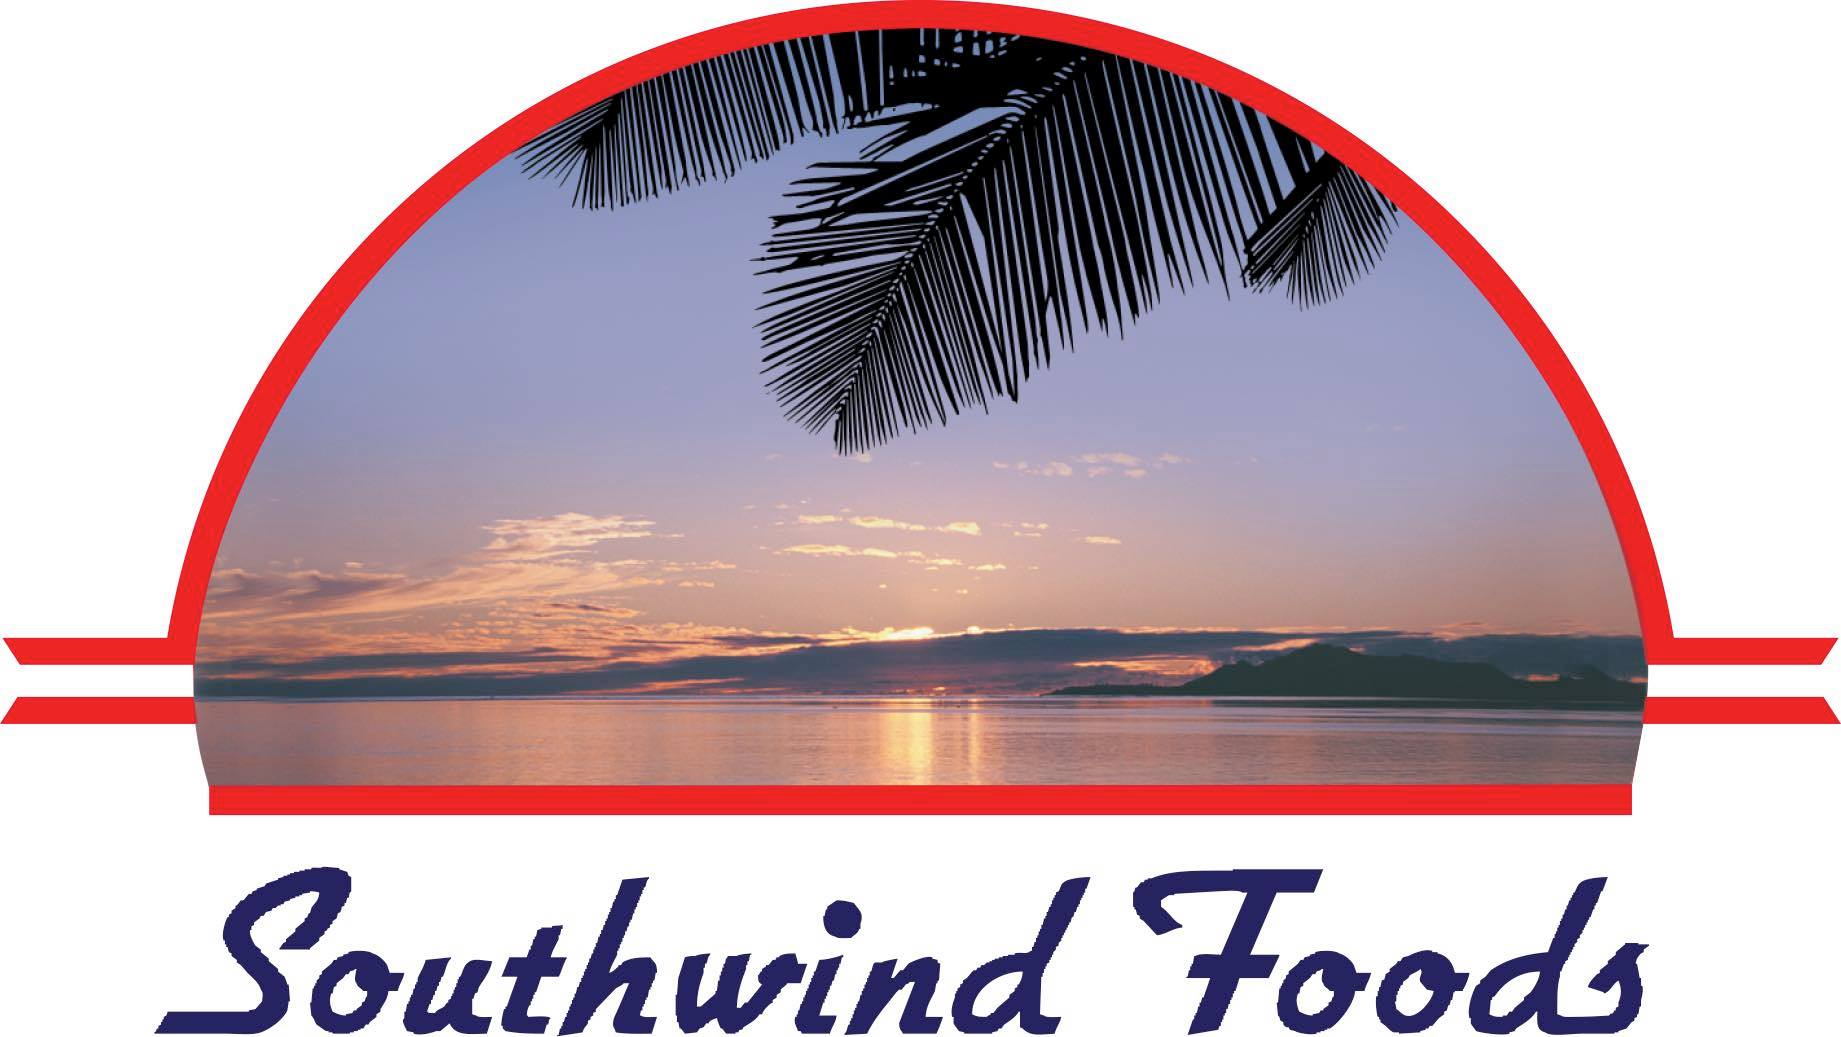 Food Distribution Process Automation: Southwind Foods Success Story